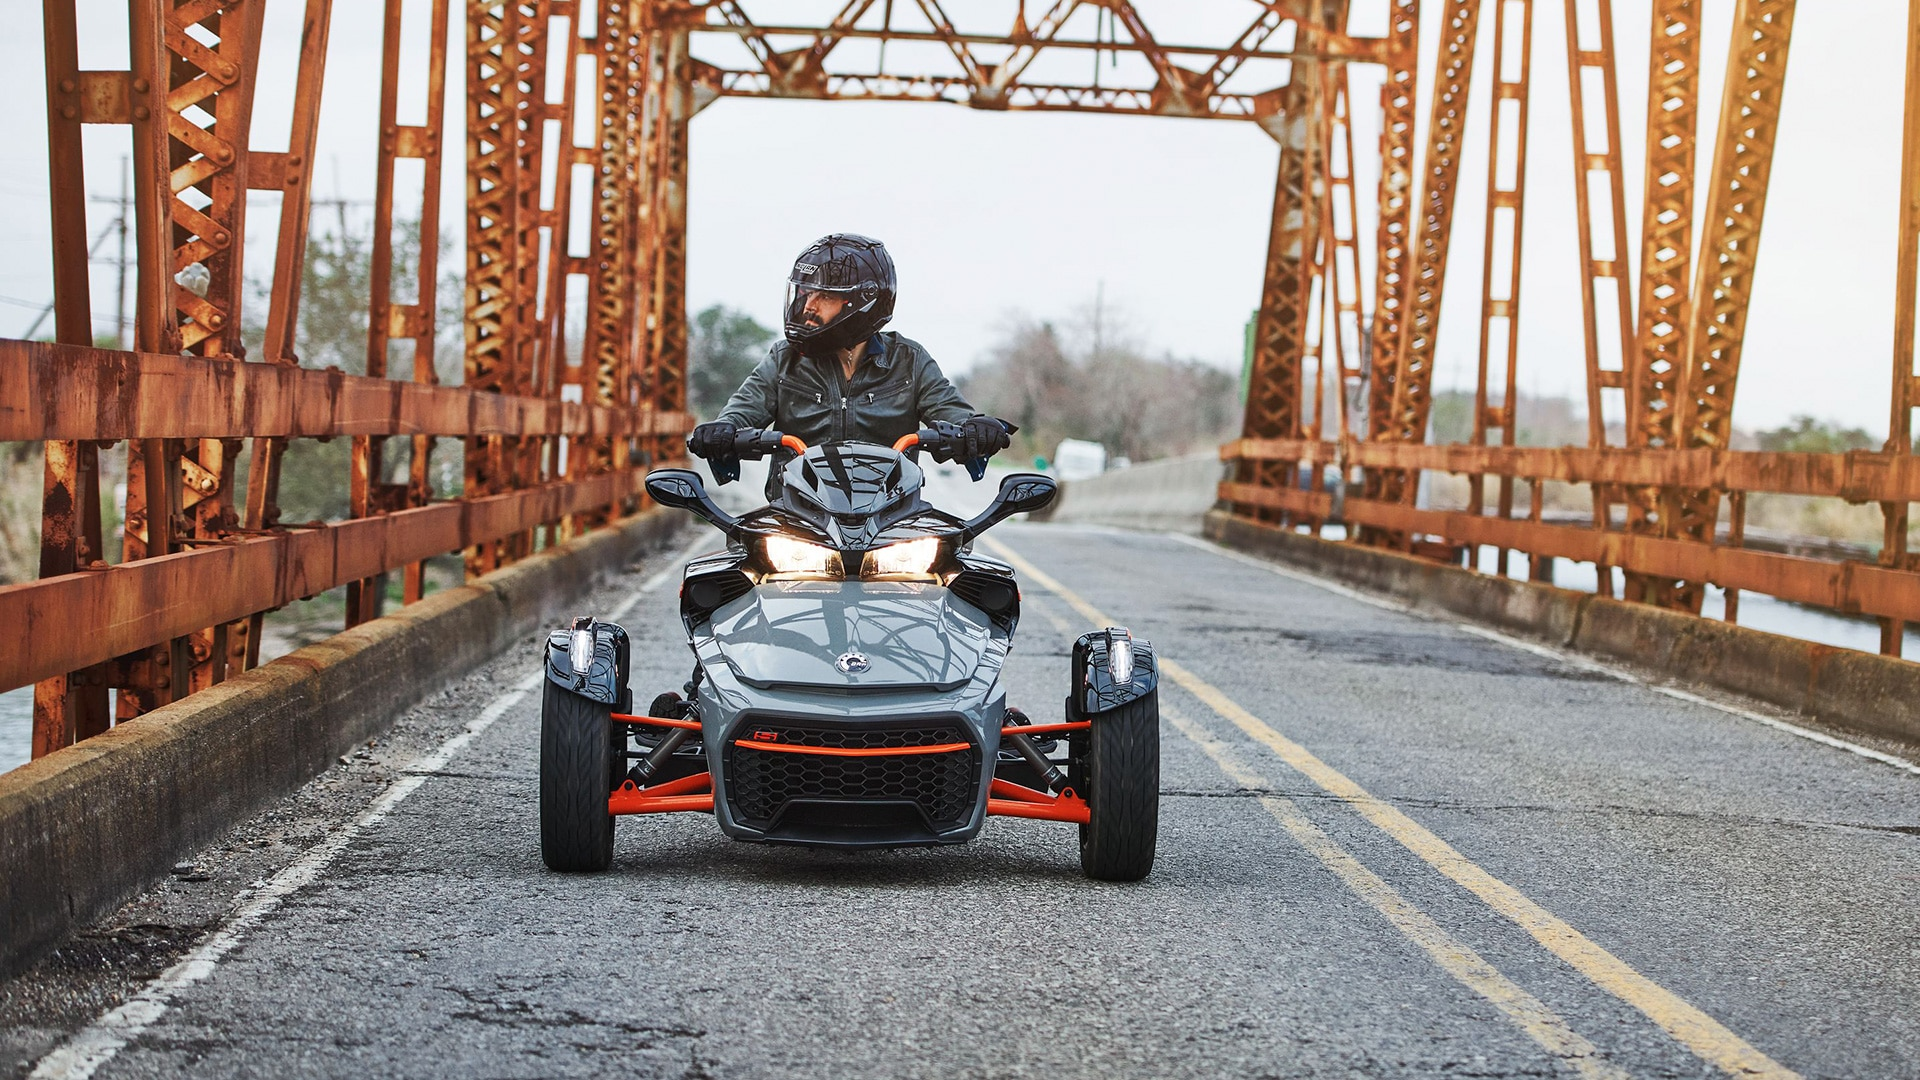 Clint driving the Spyder F3-S SS on a bridge